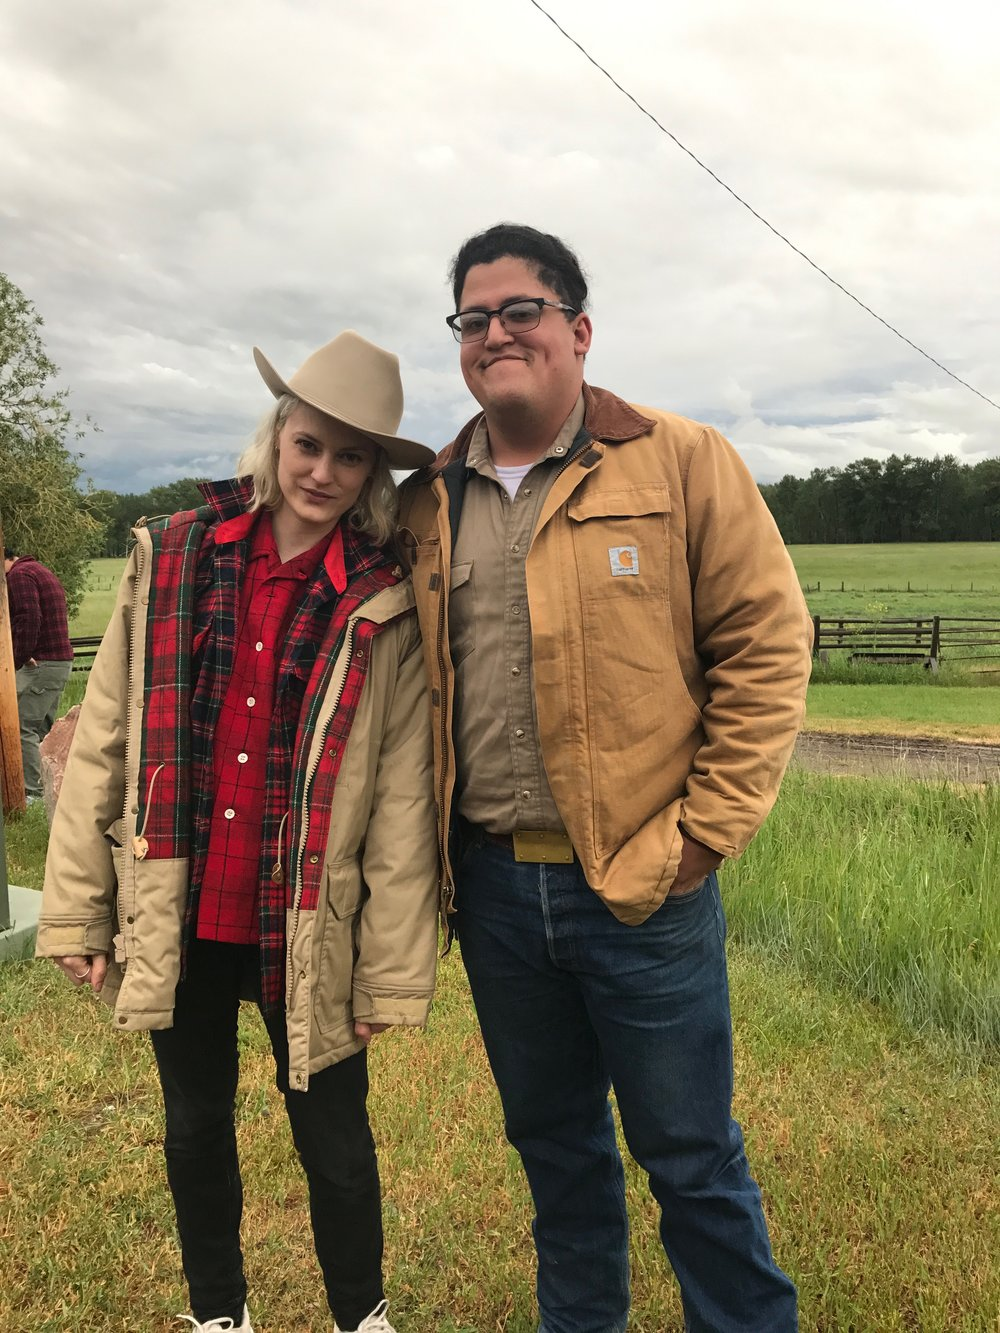 Laine Rettmer and Joe Strom, June 2017 site visit to the Kelly Ranch.